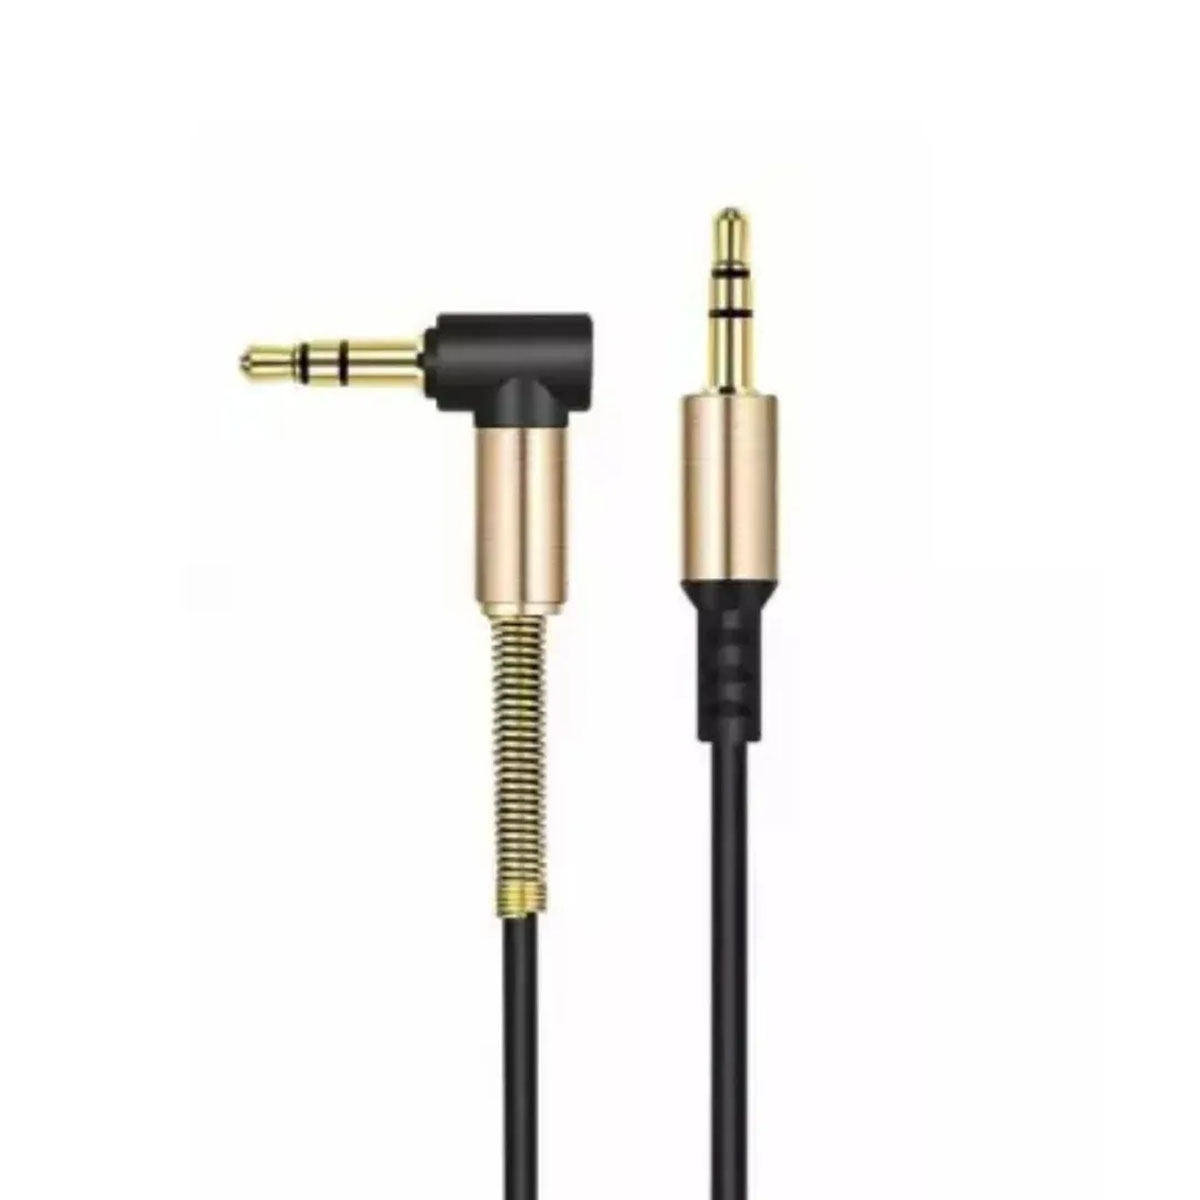 Cabo P2 Auxilar Audio formato L 90 graus P2 x P2 3.5mm Stereo